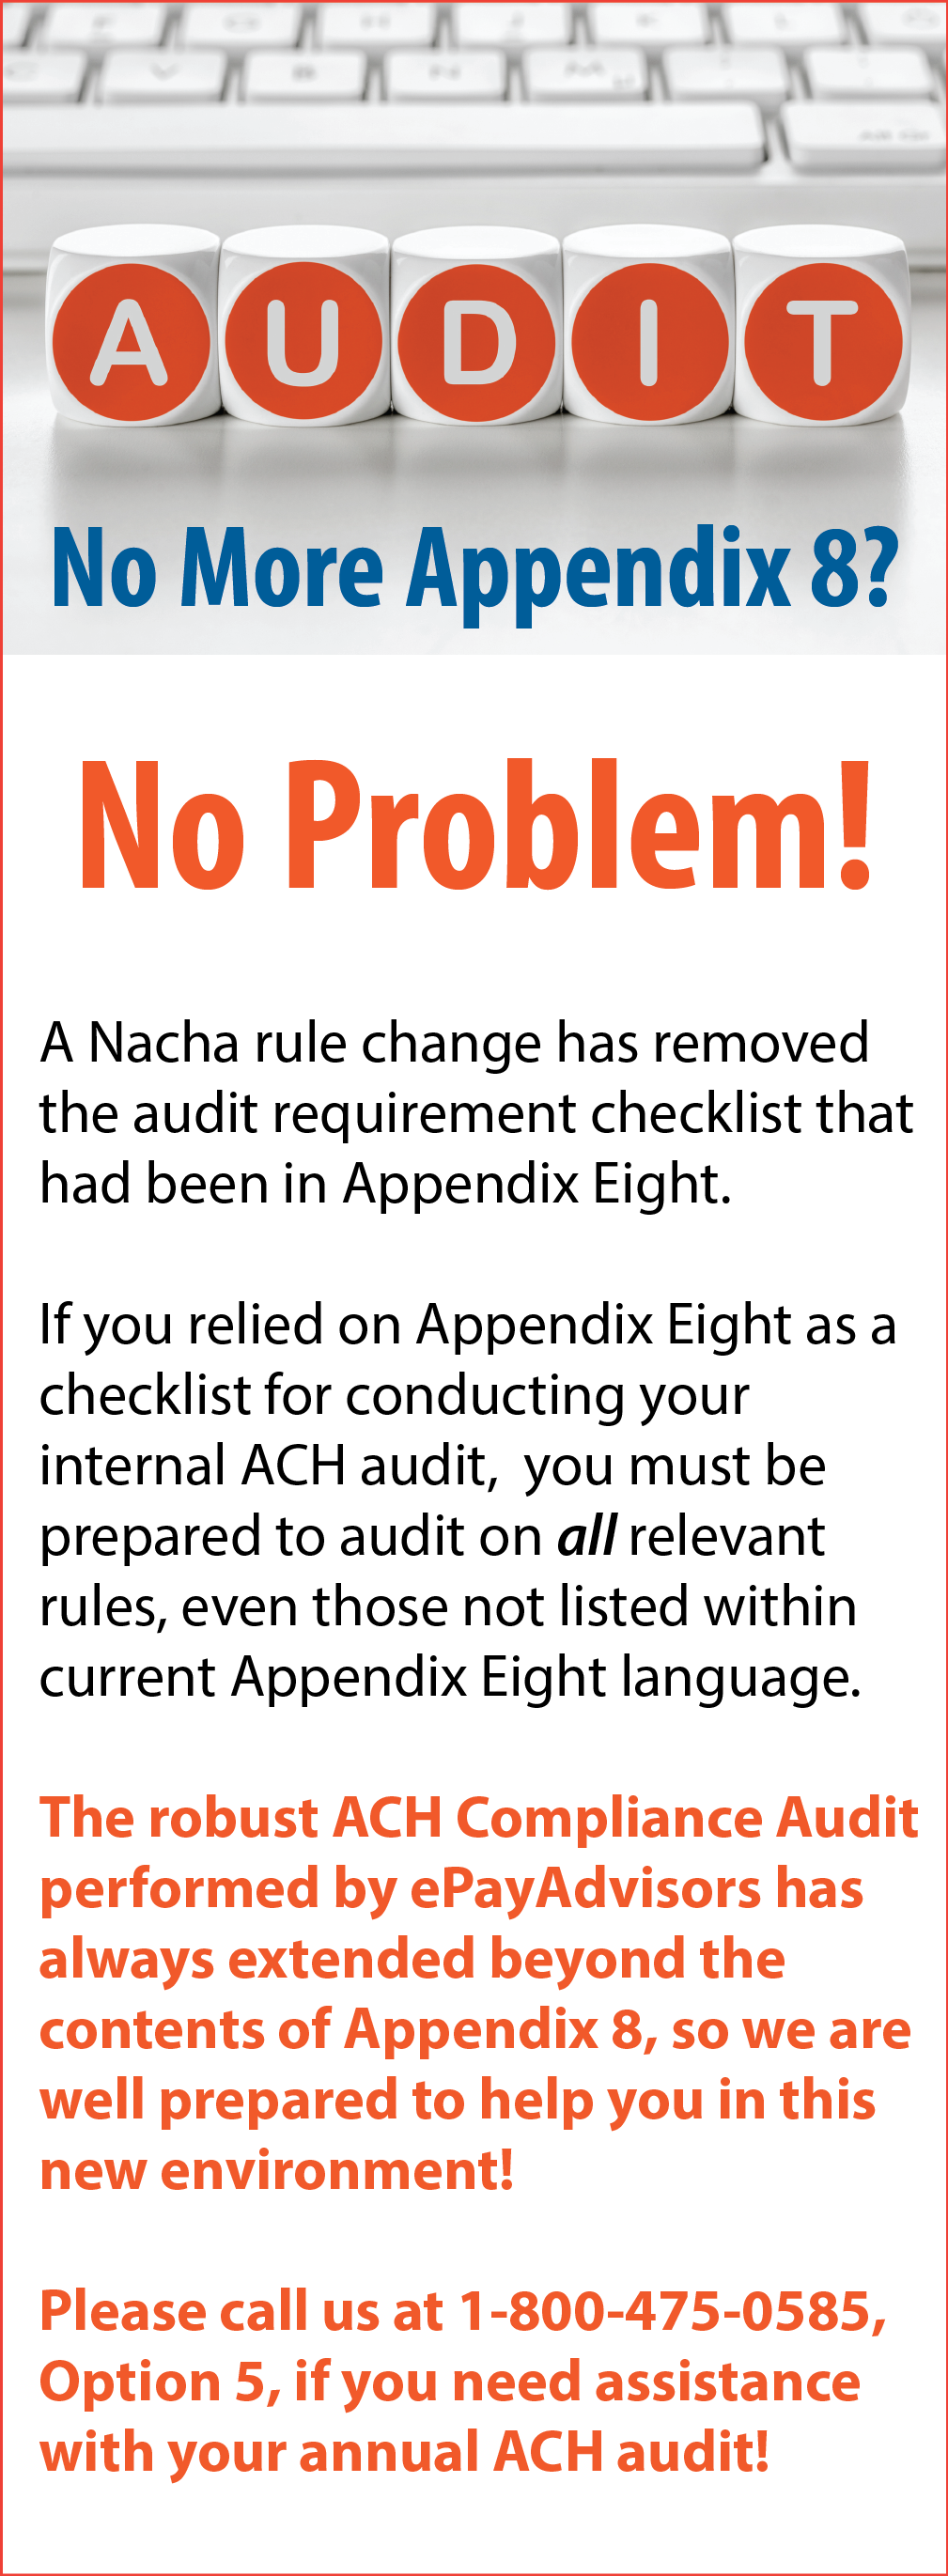 A Nacha rule change has removed the Audit requirement checklist for Appendix 8. The robust ACH Compliance Audit performed by ePayAdvisors has always extended beyond the contents of Appendix 8. Please contact us if you need assistance with your annual ACH Compliance Audit.